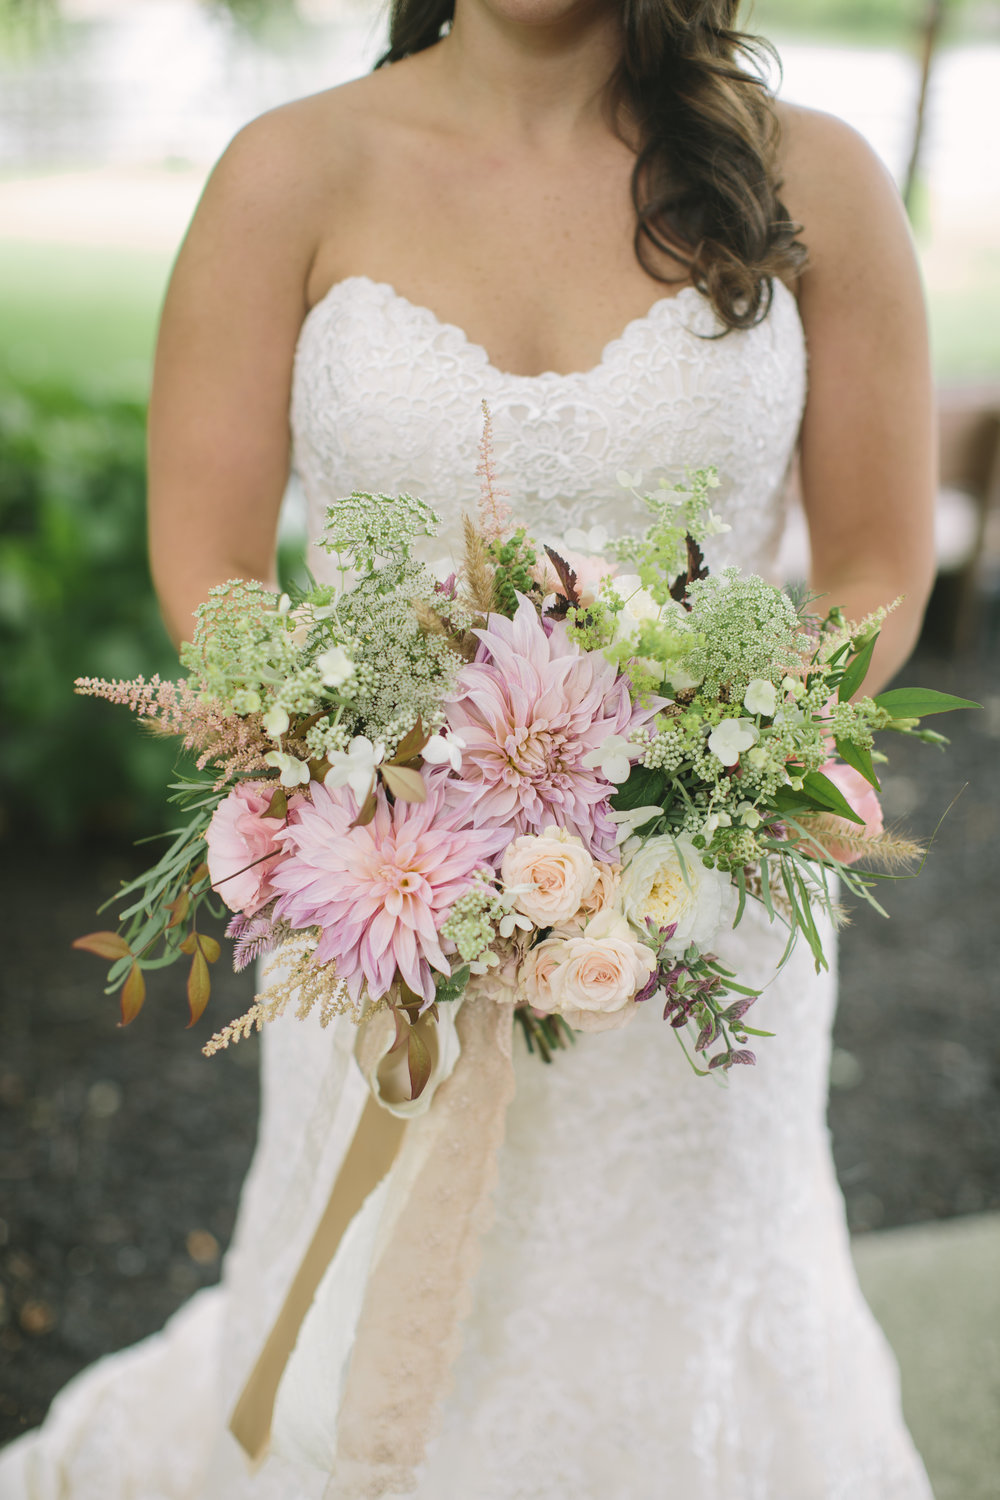 Smithville Inn Wedding, Bride Bouquet, Blush and White Bouquet, Salt Water Studios